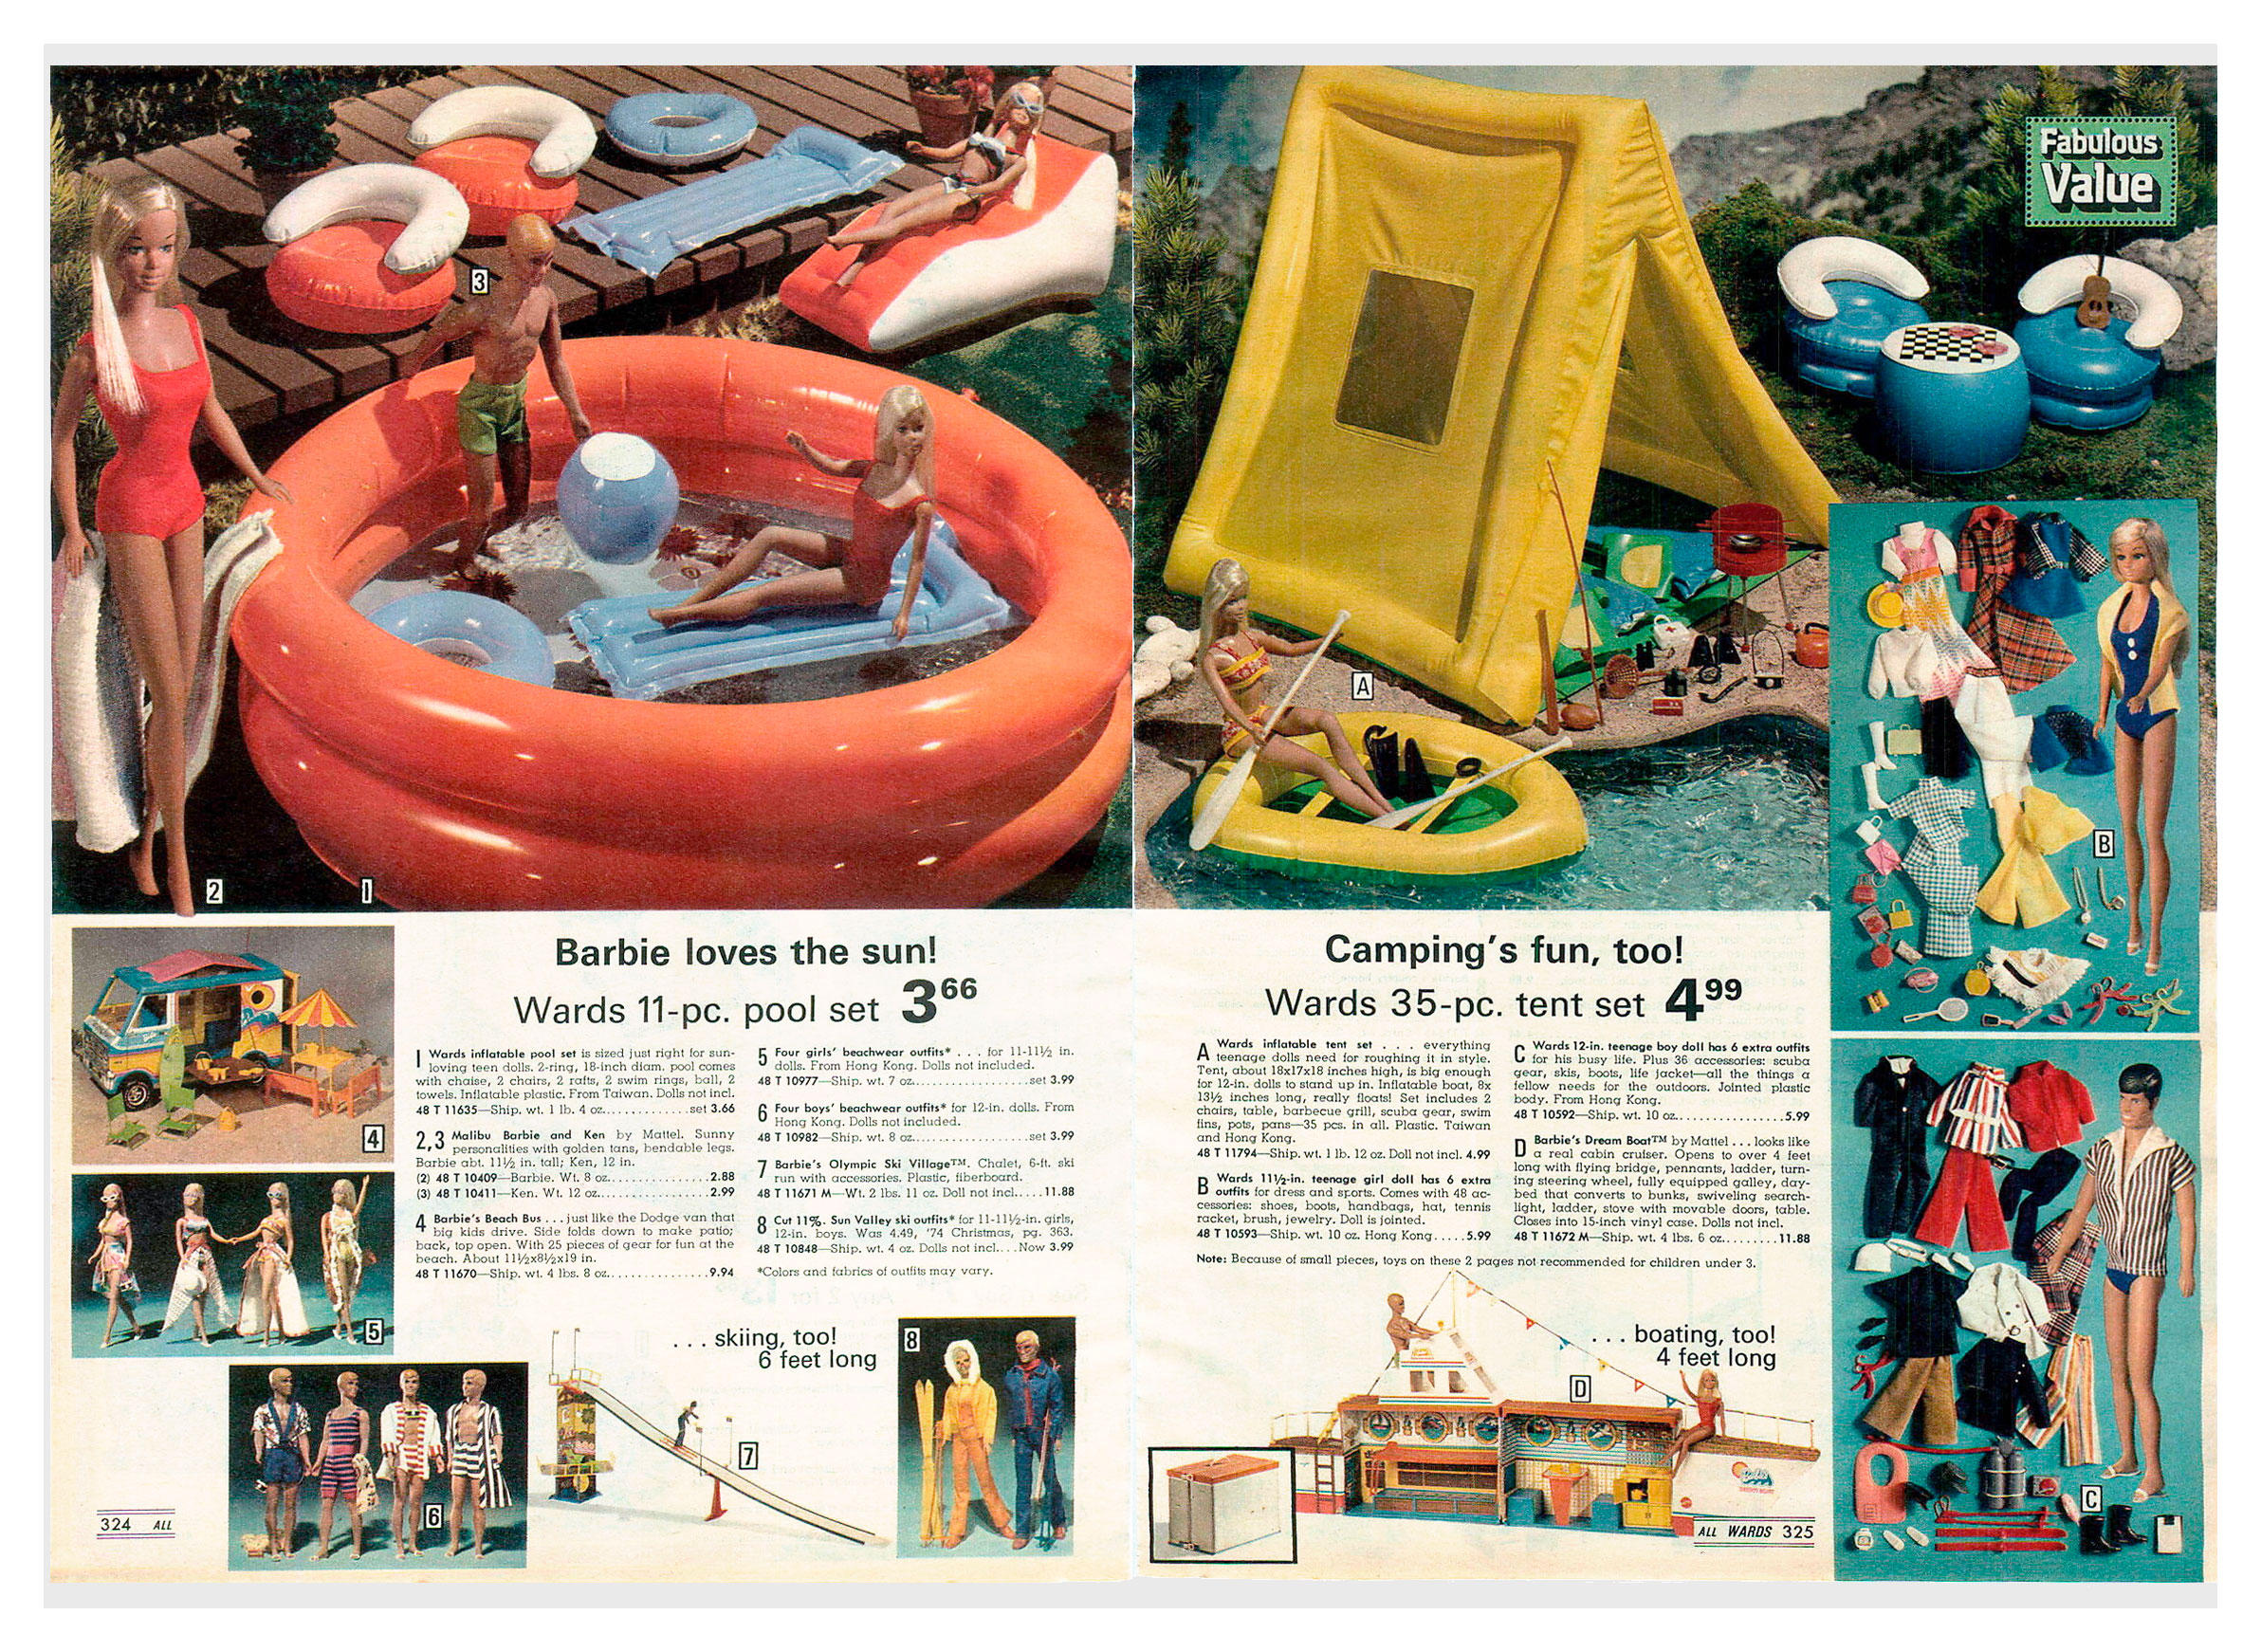 From 1975 Montgomery Ward Christmas catalogue